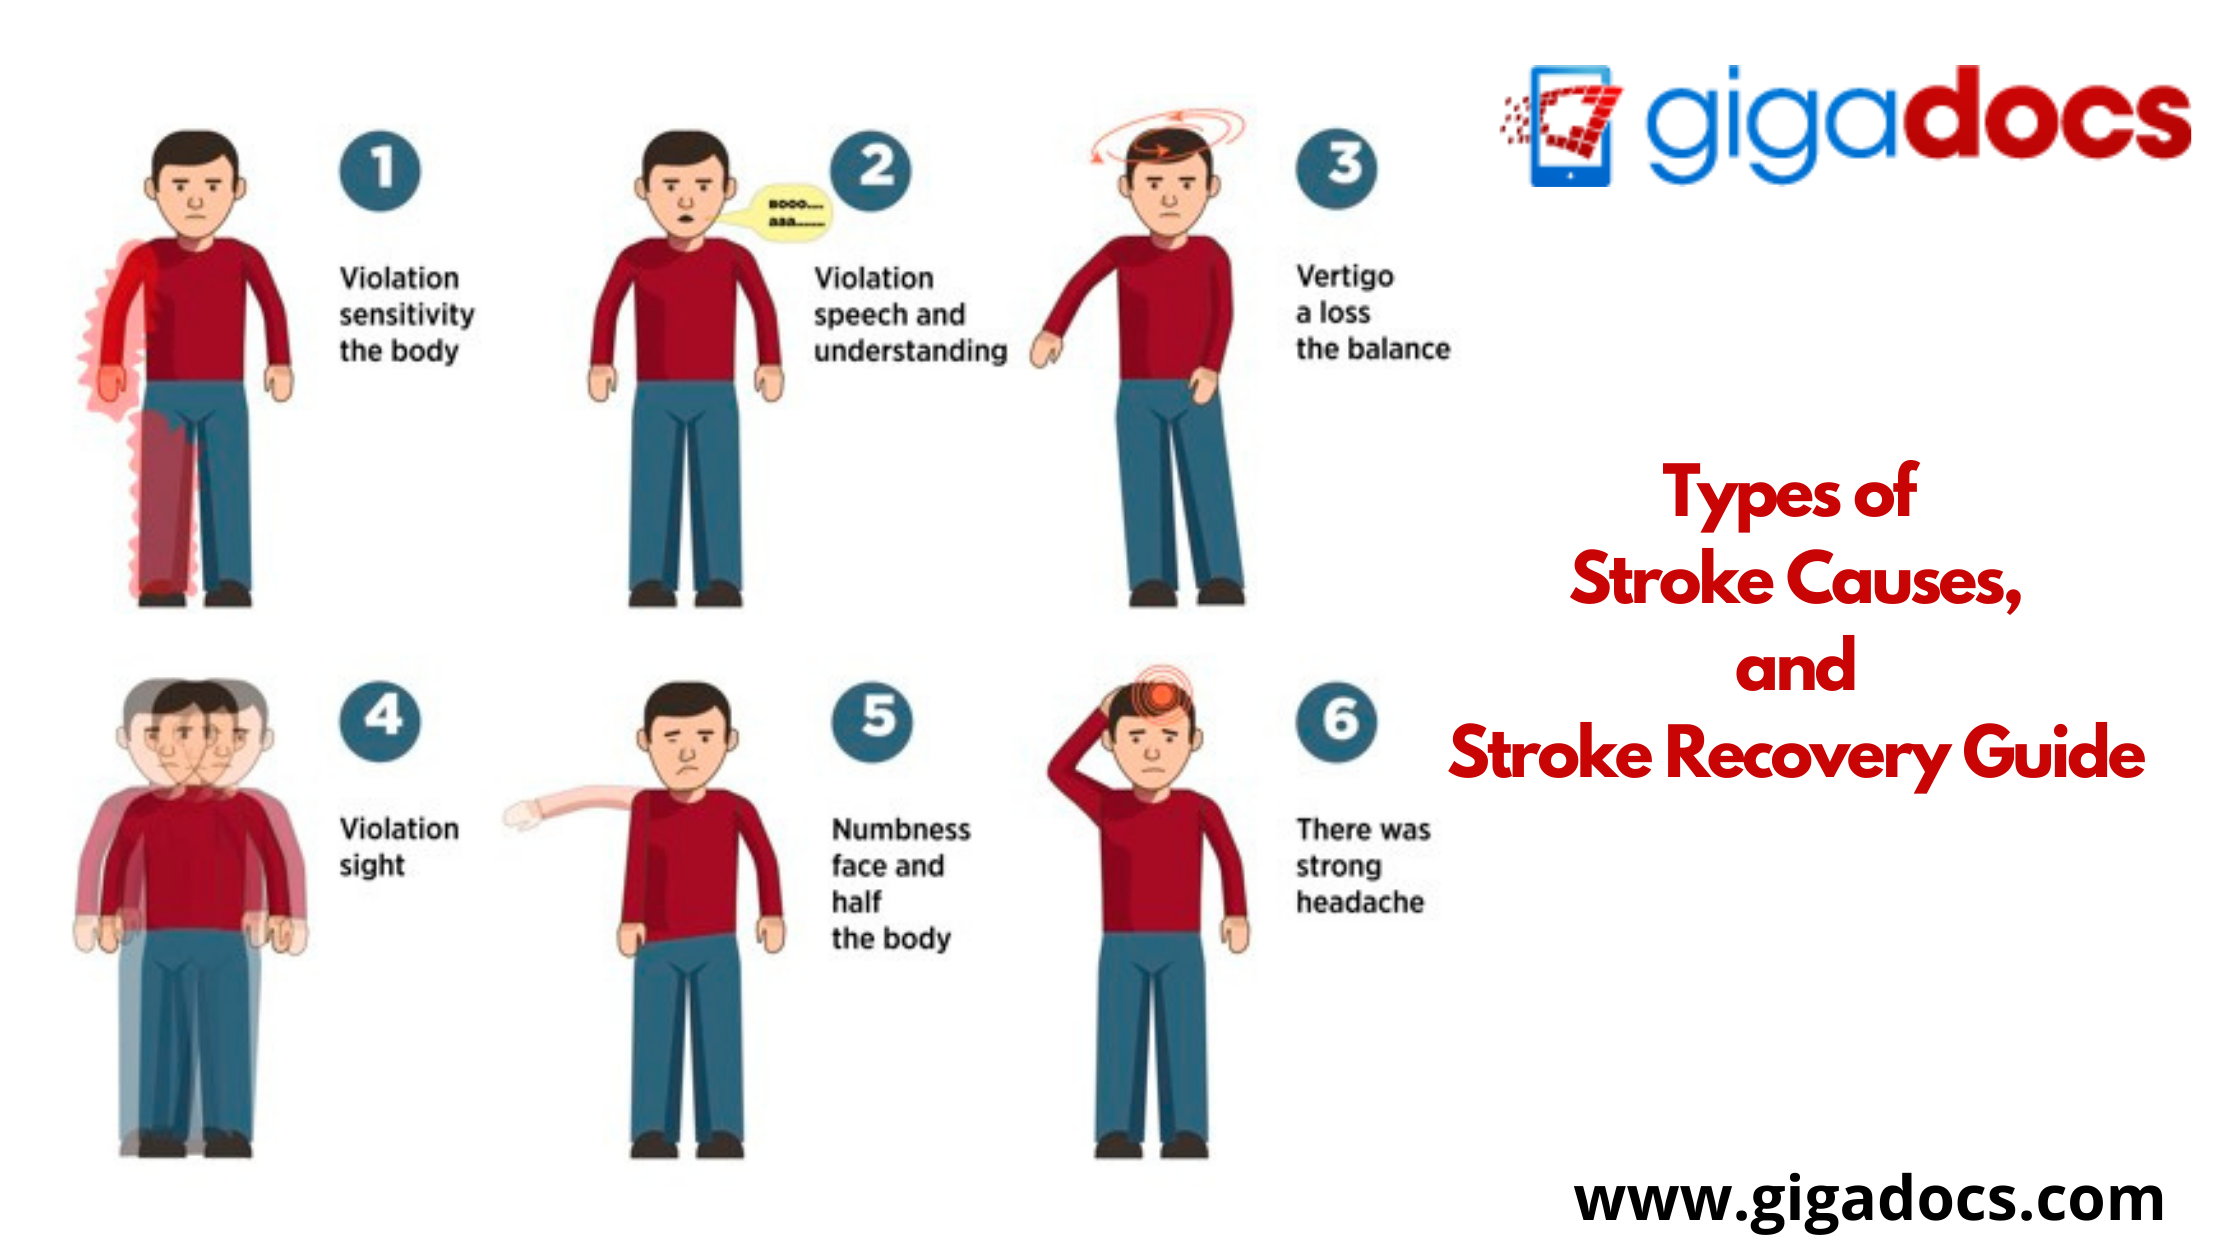 Stroke Causes, Symptoms, and Recovery Guide